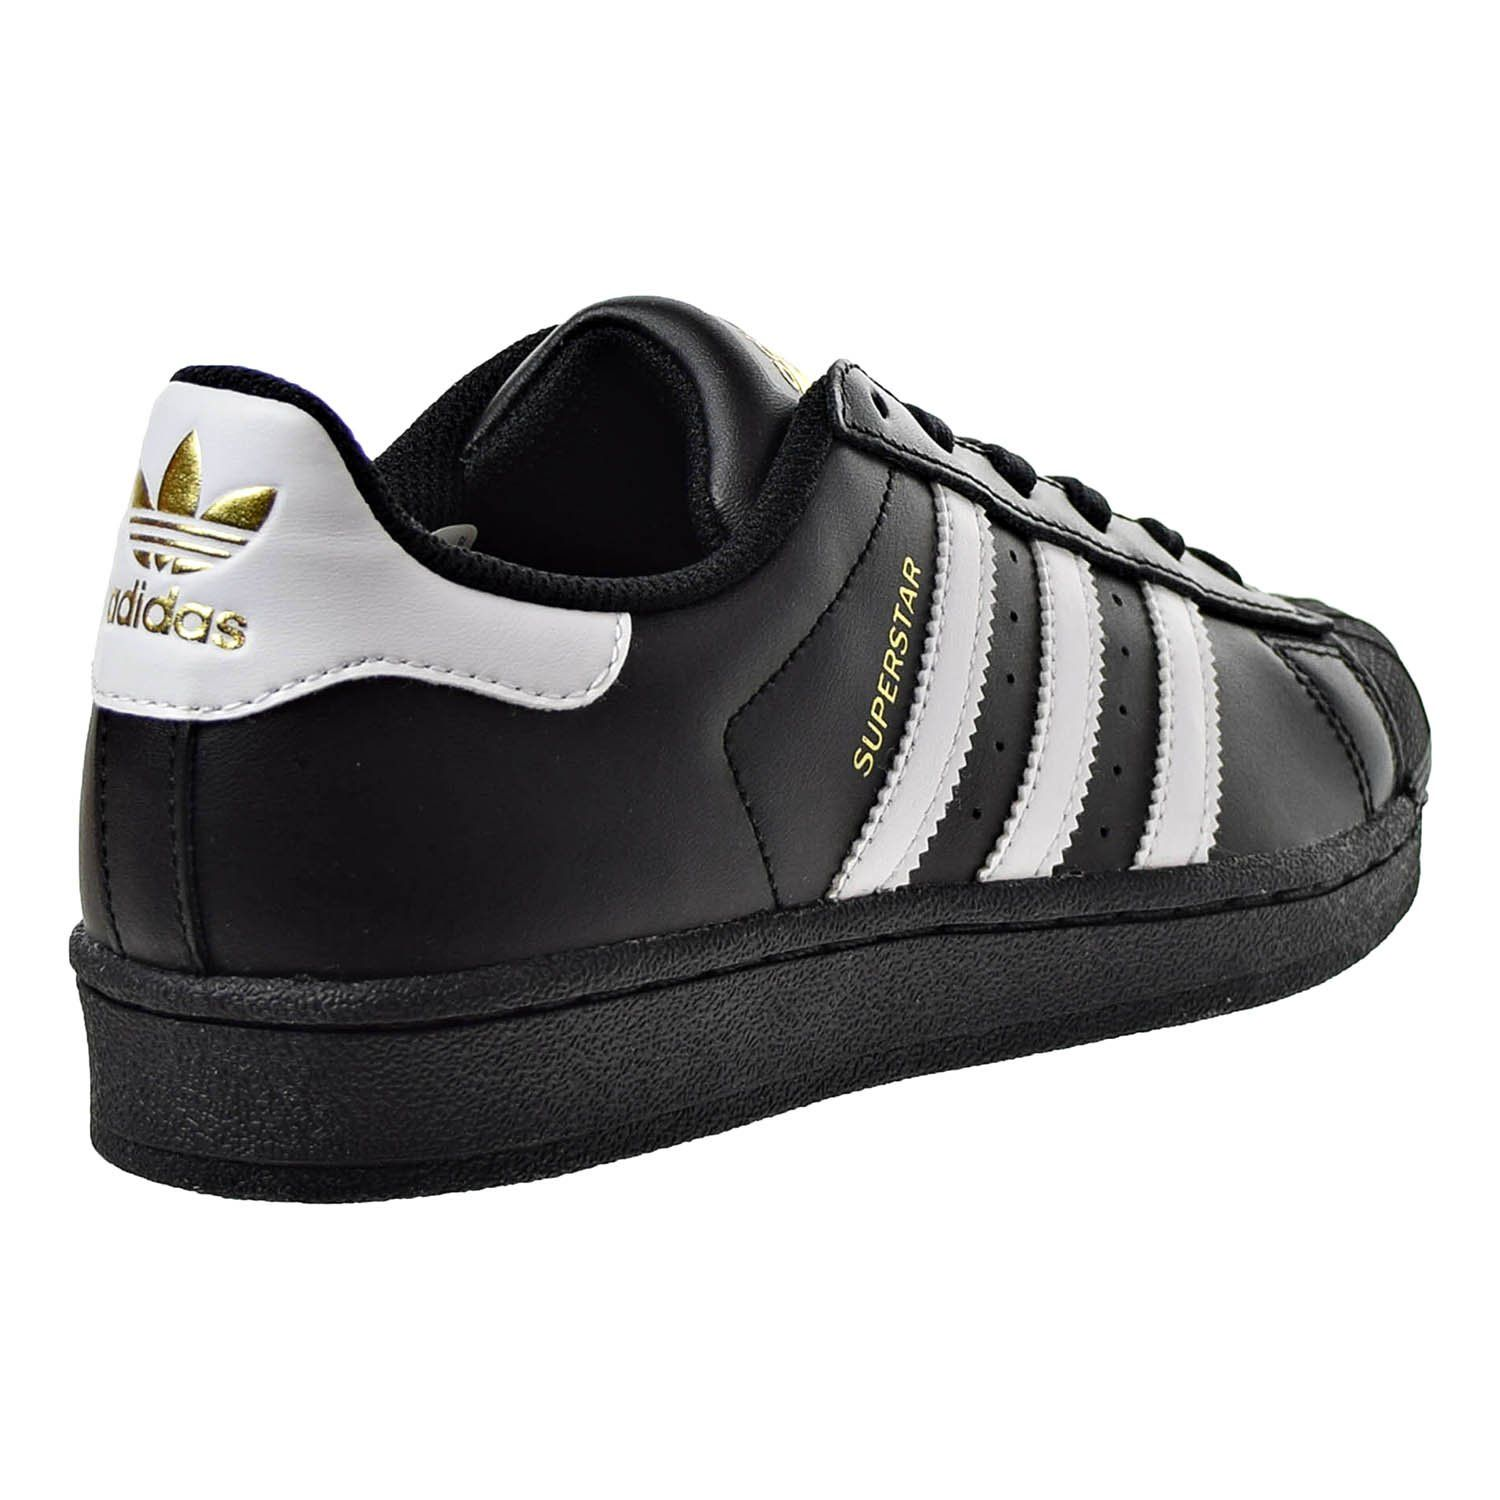 adidas Originals Womens Superstar W Black/White/Metallic